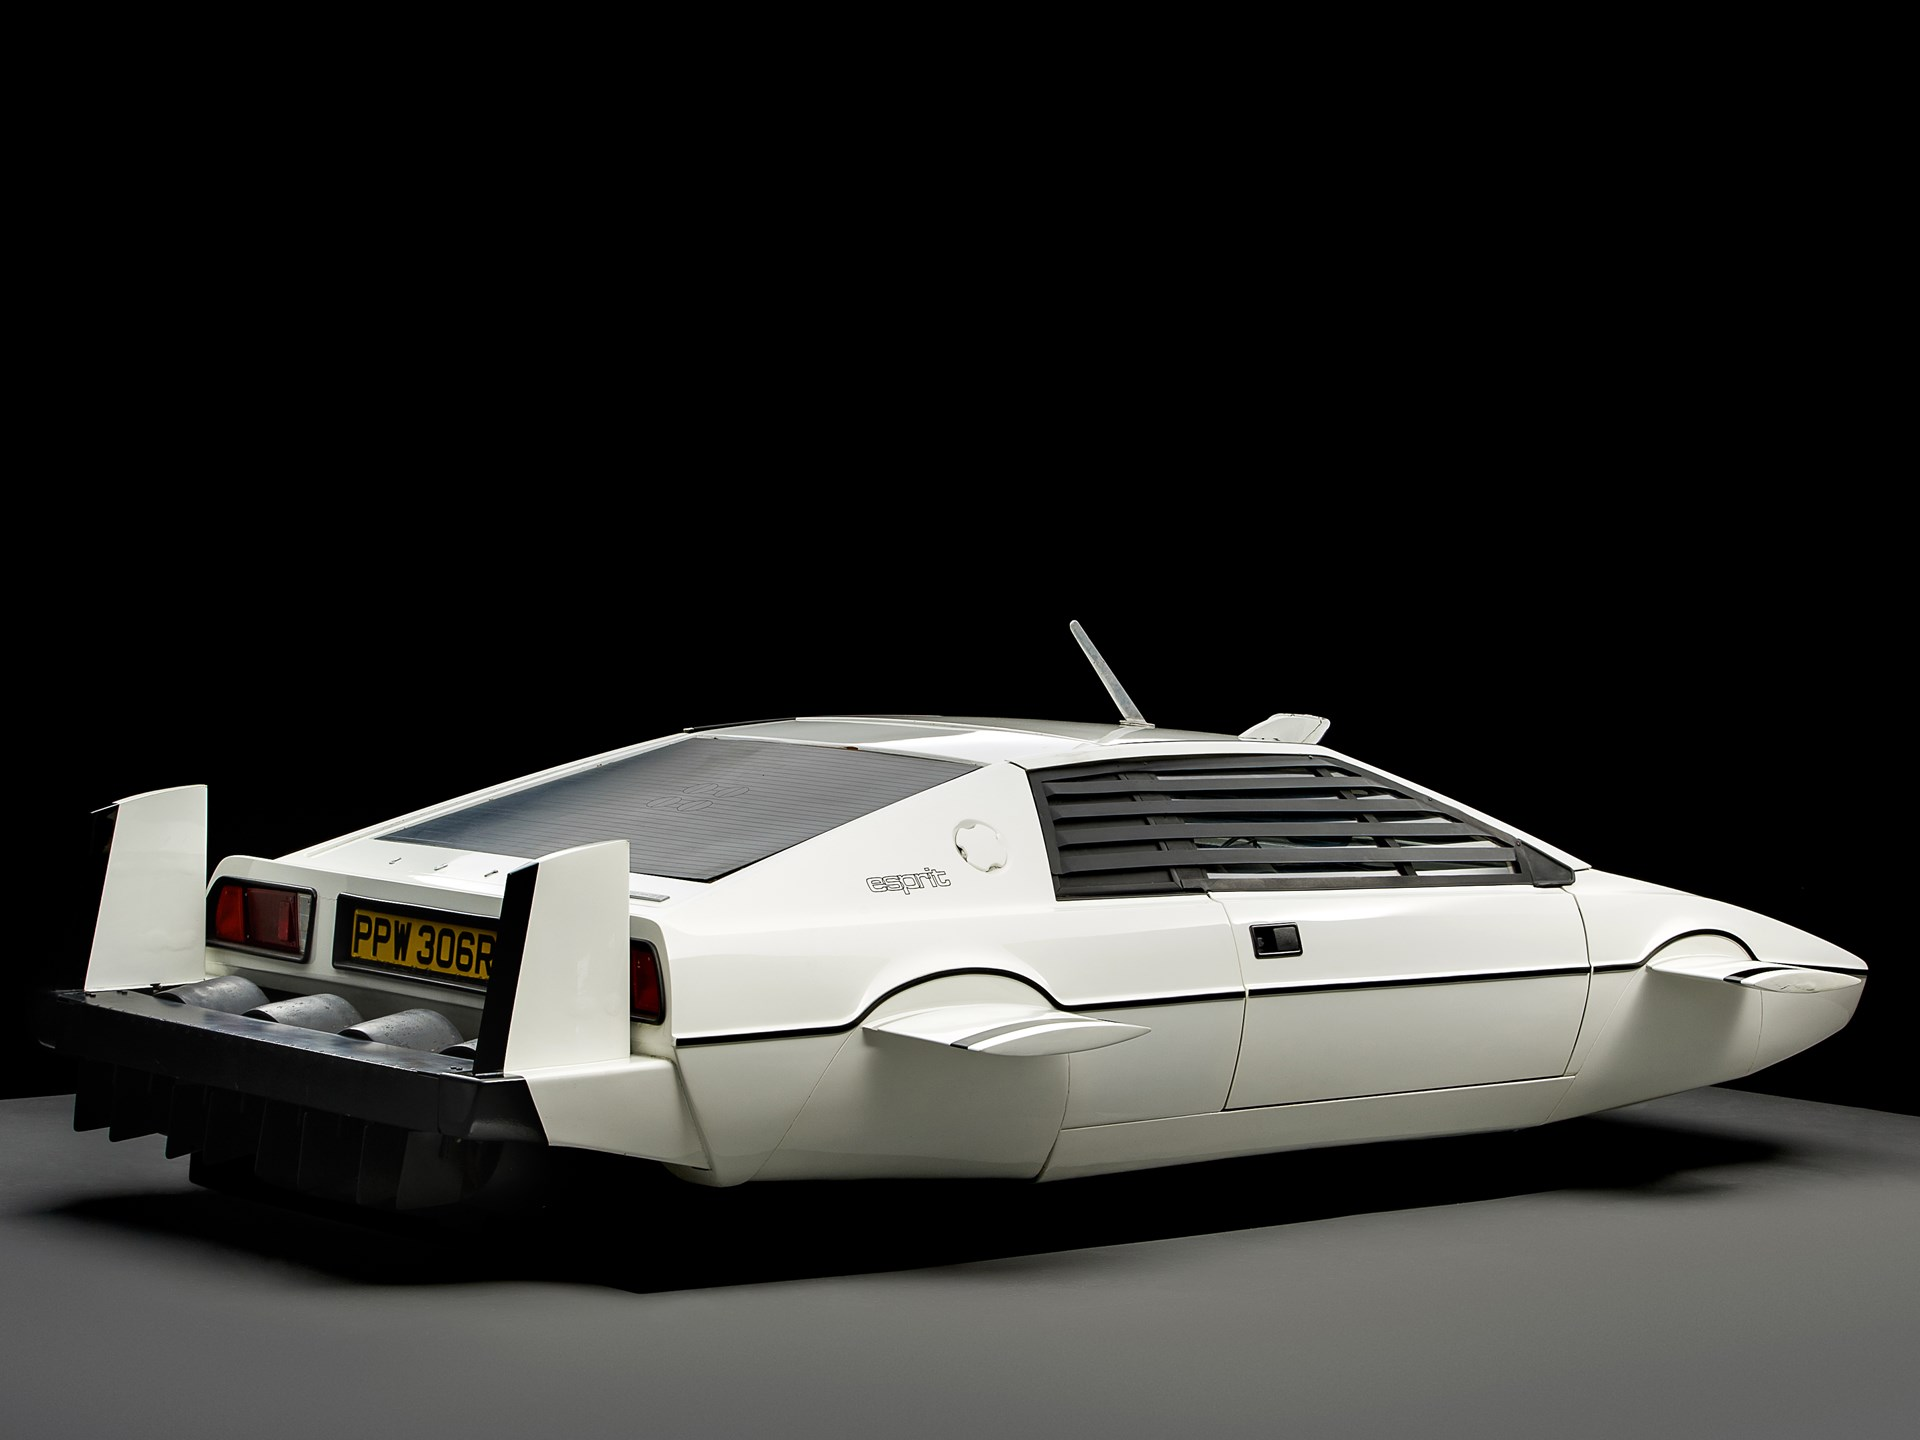 Tesla's Cybertruck was inspired by this '70s Bond submarine movie car thumbnail